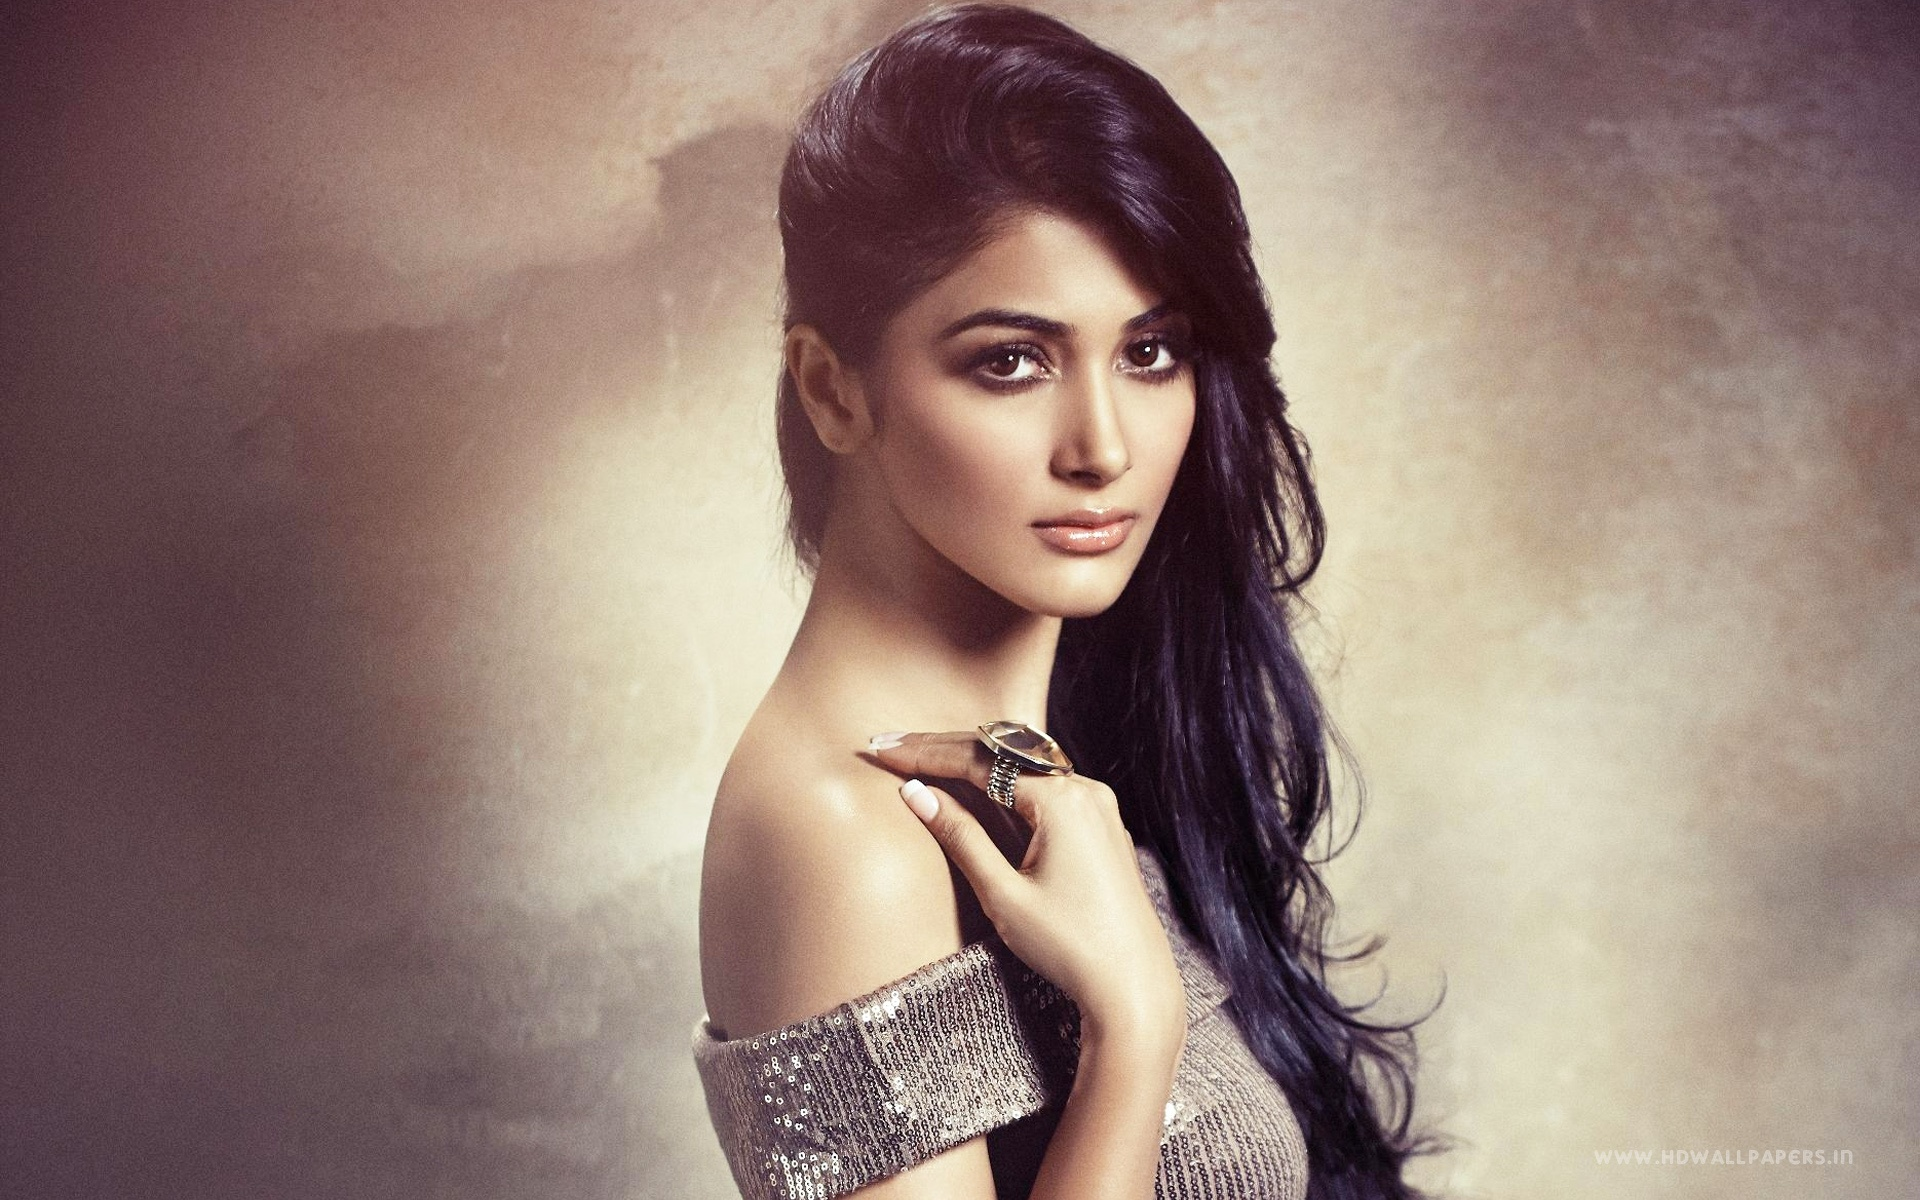 Actress Wallpapers Download Free: Pooja Hegde Bollywood Actress Wallpapers In Jpg Format For